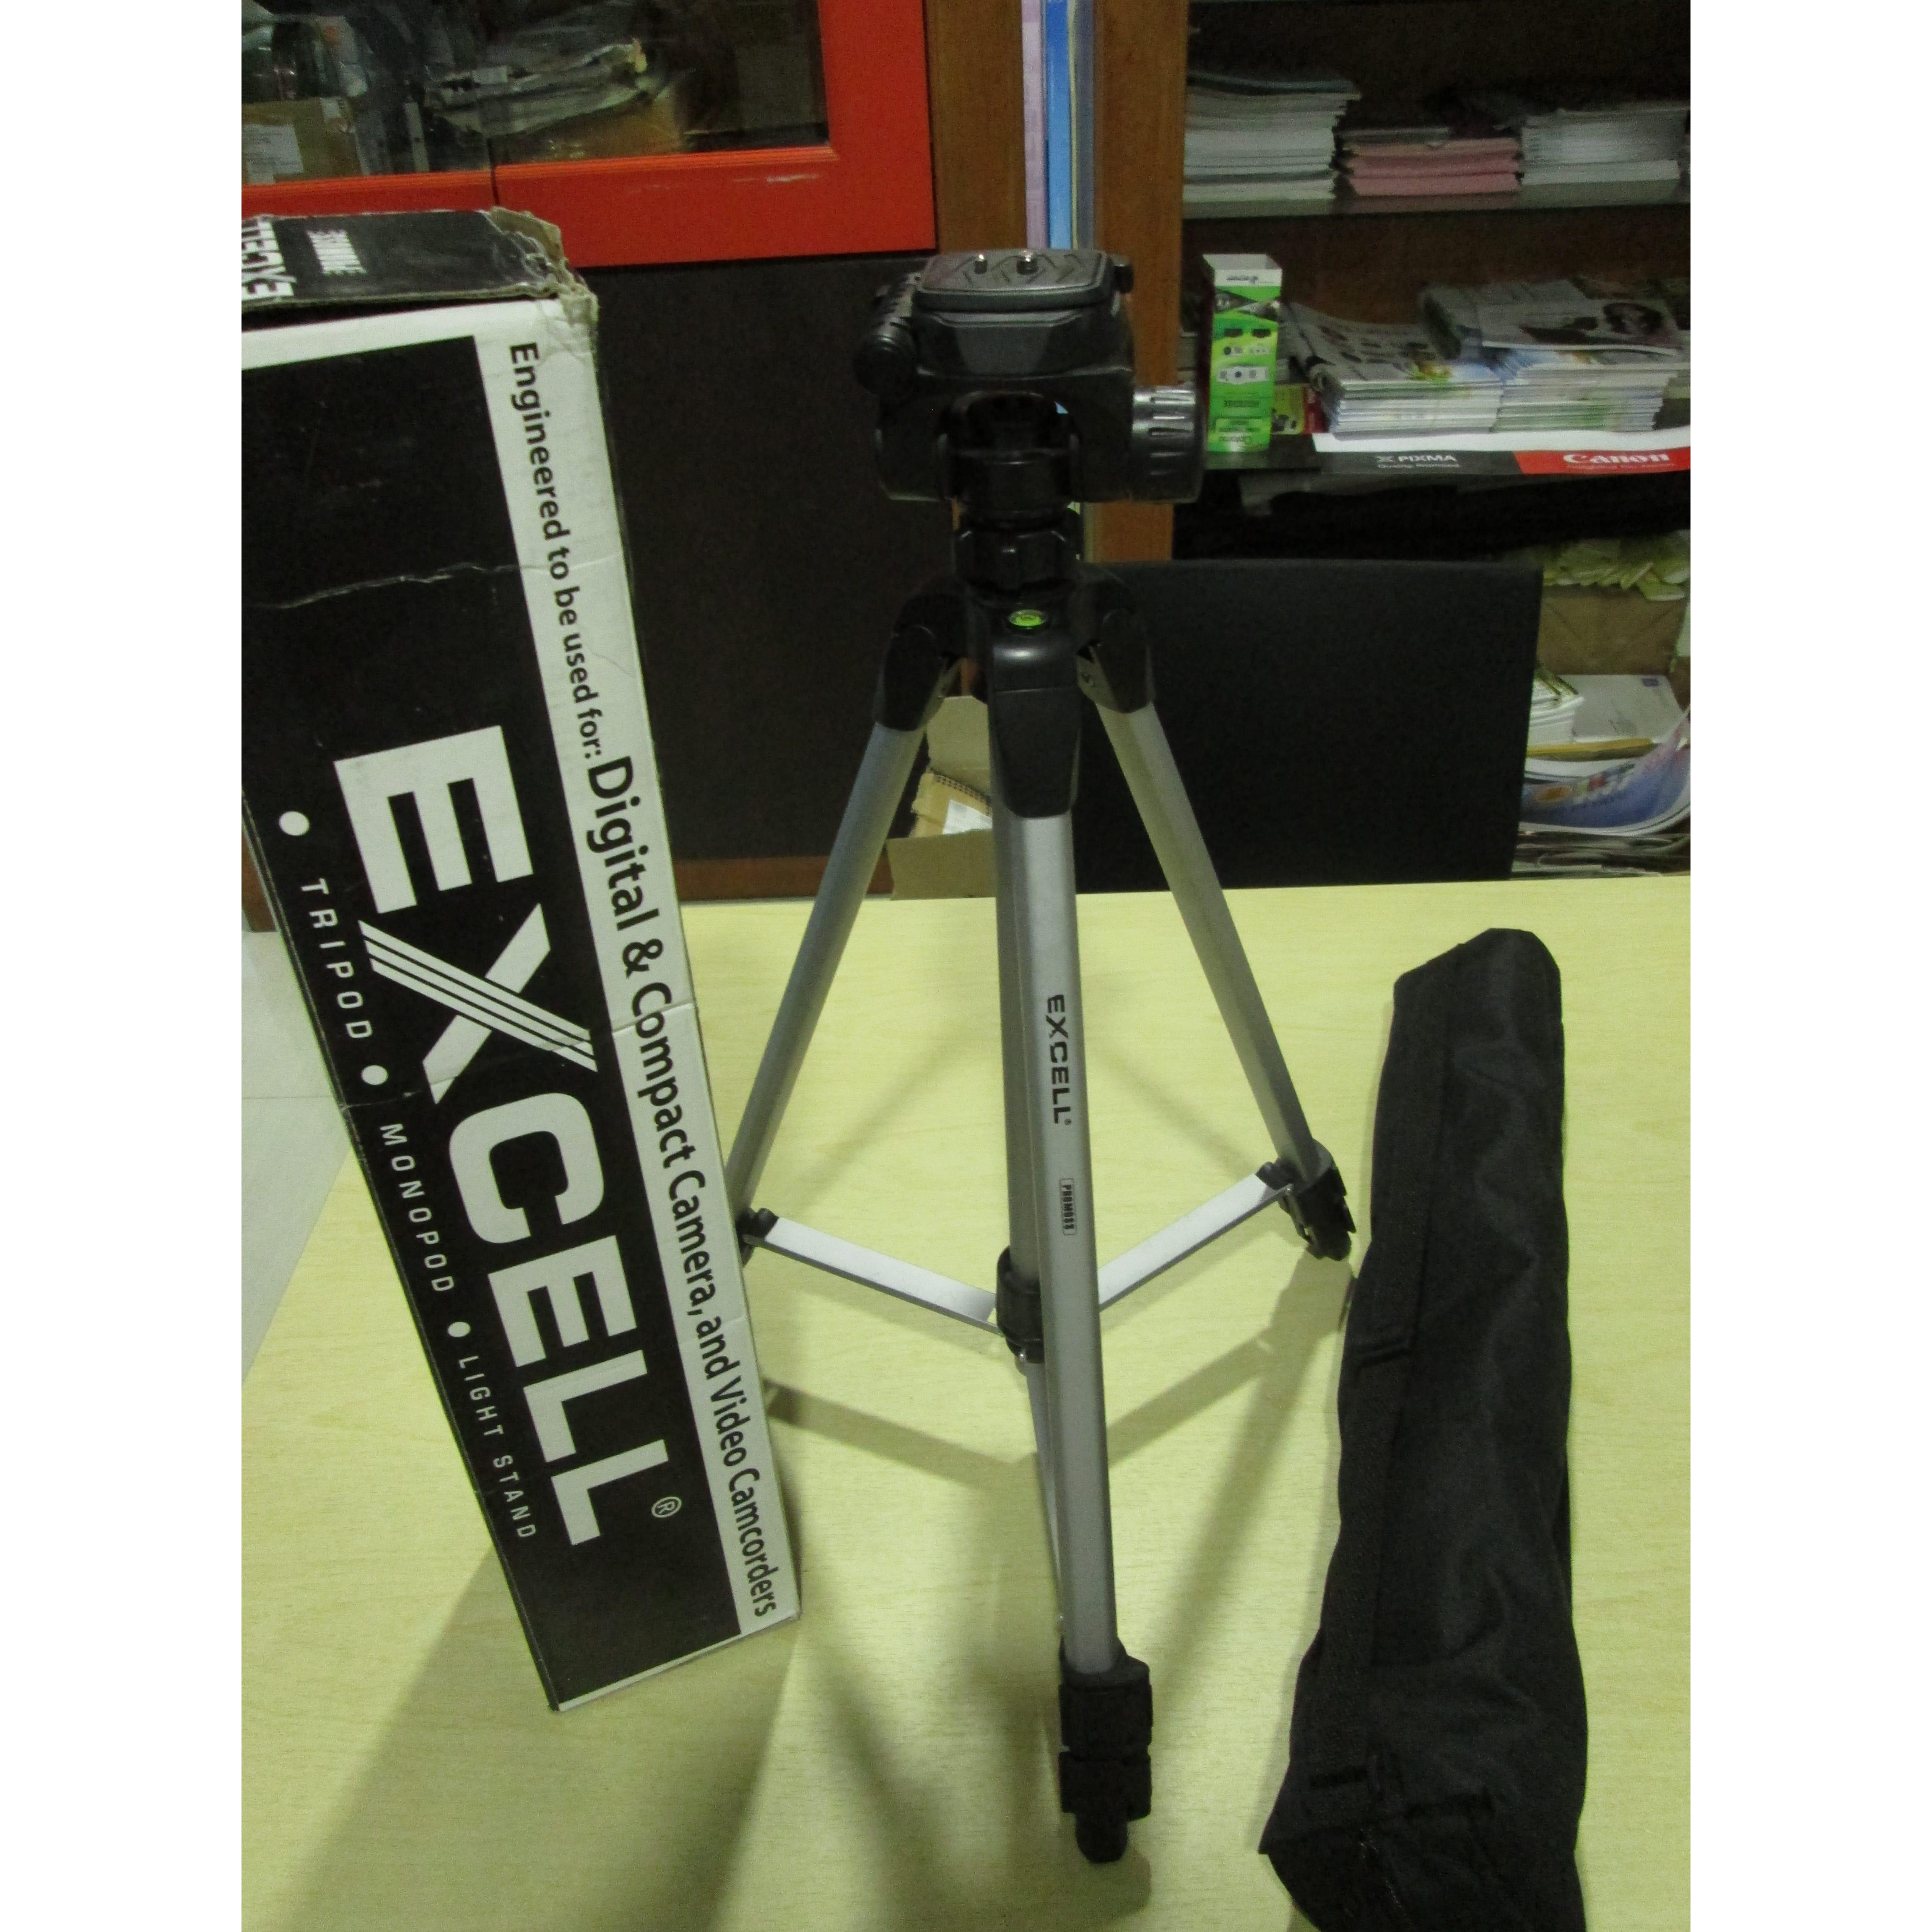 Excell Promos Tripod Silver Daftar Harga Terlengkap Indonesia Motto 2818 Hitam Promoss